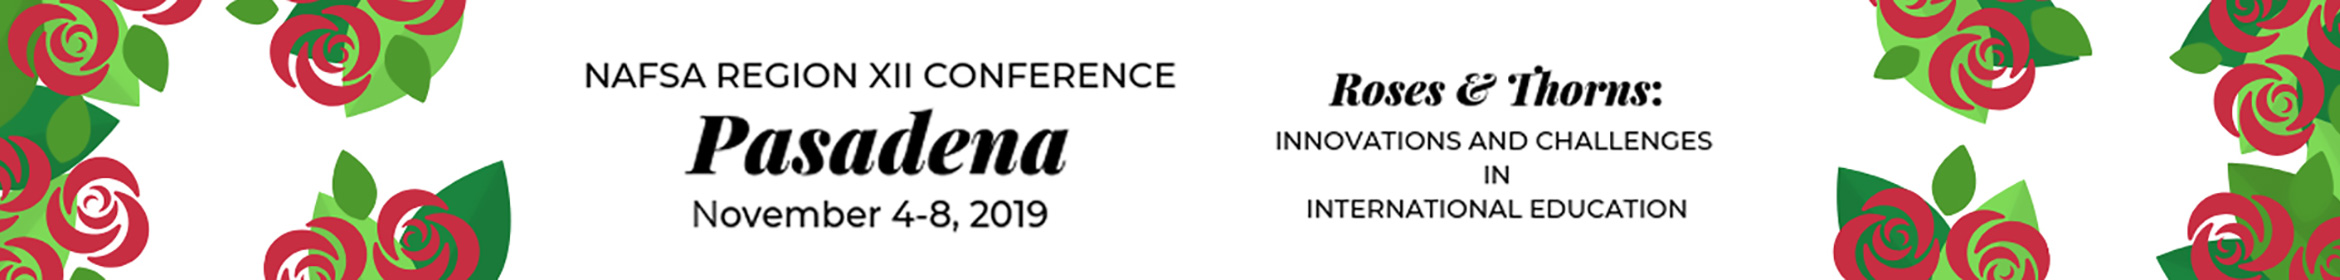 2019 NAFSA Region XII Conference Main banner